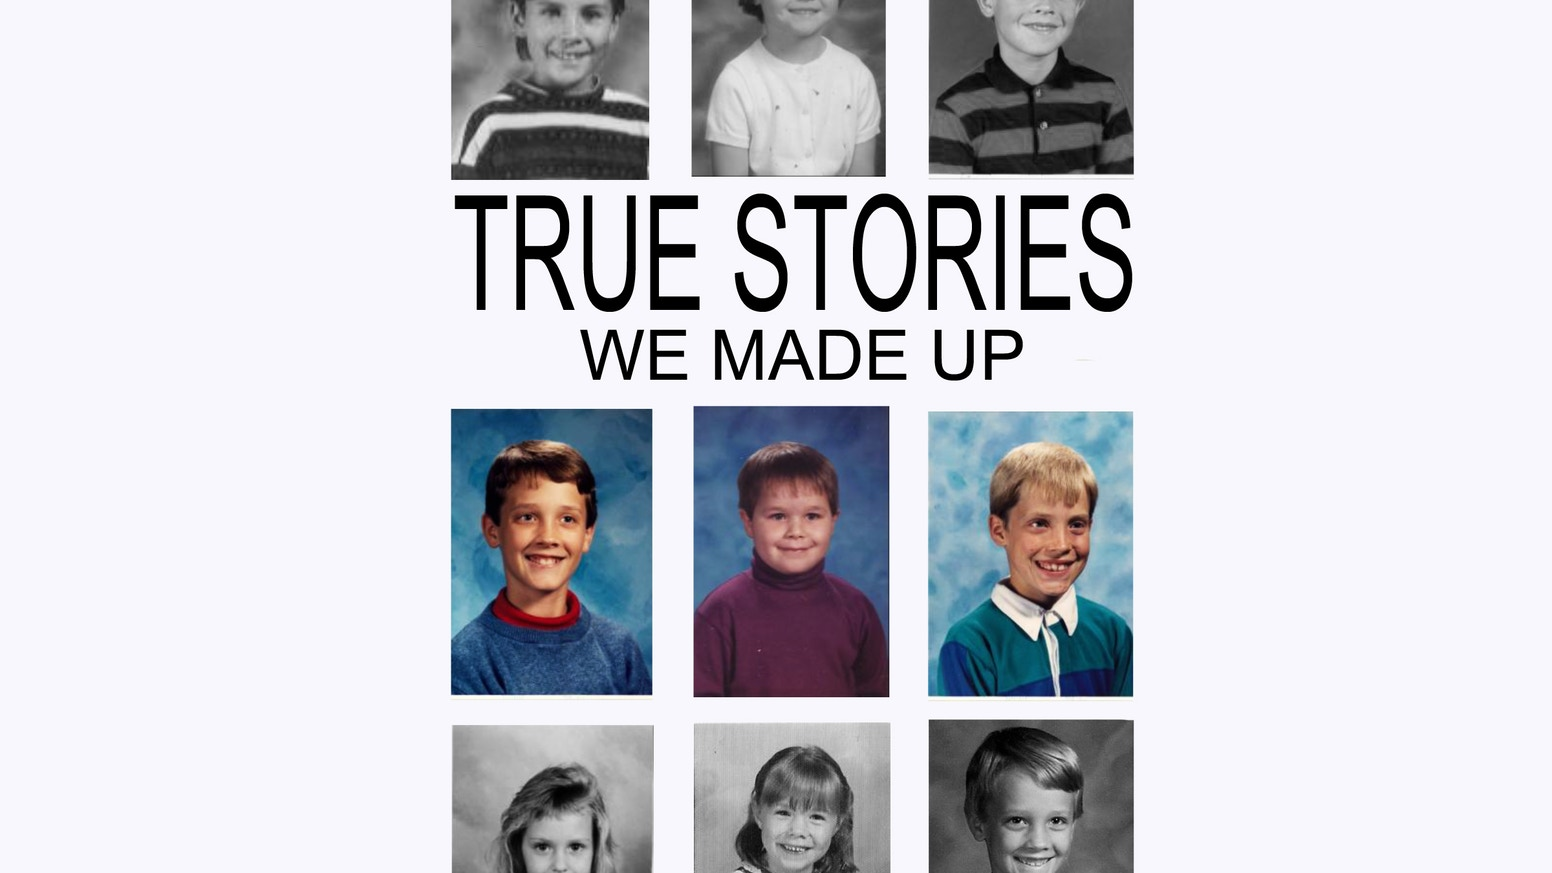 True Stories: We Made Up  by Michael Johnson/Chris Johnson/Dave